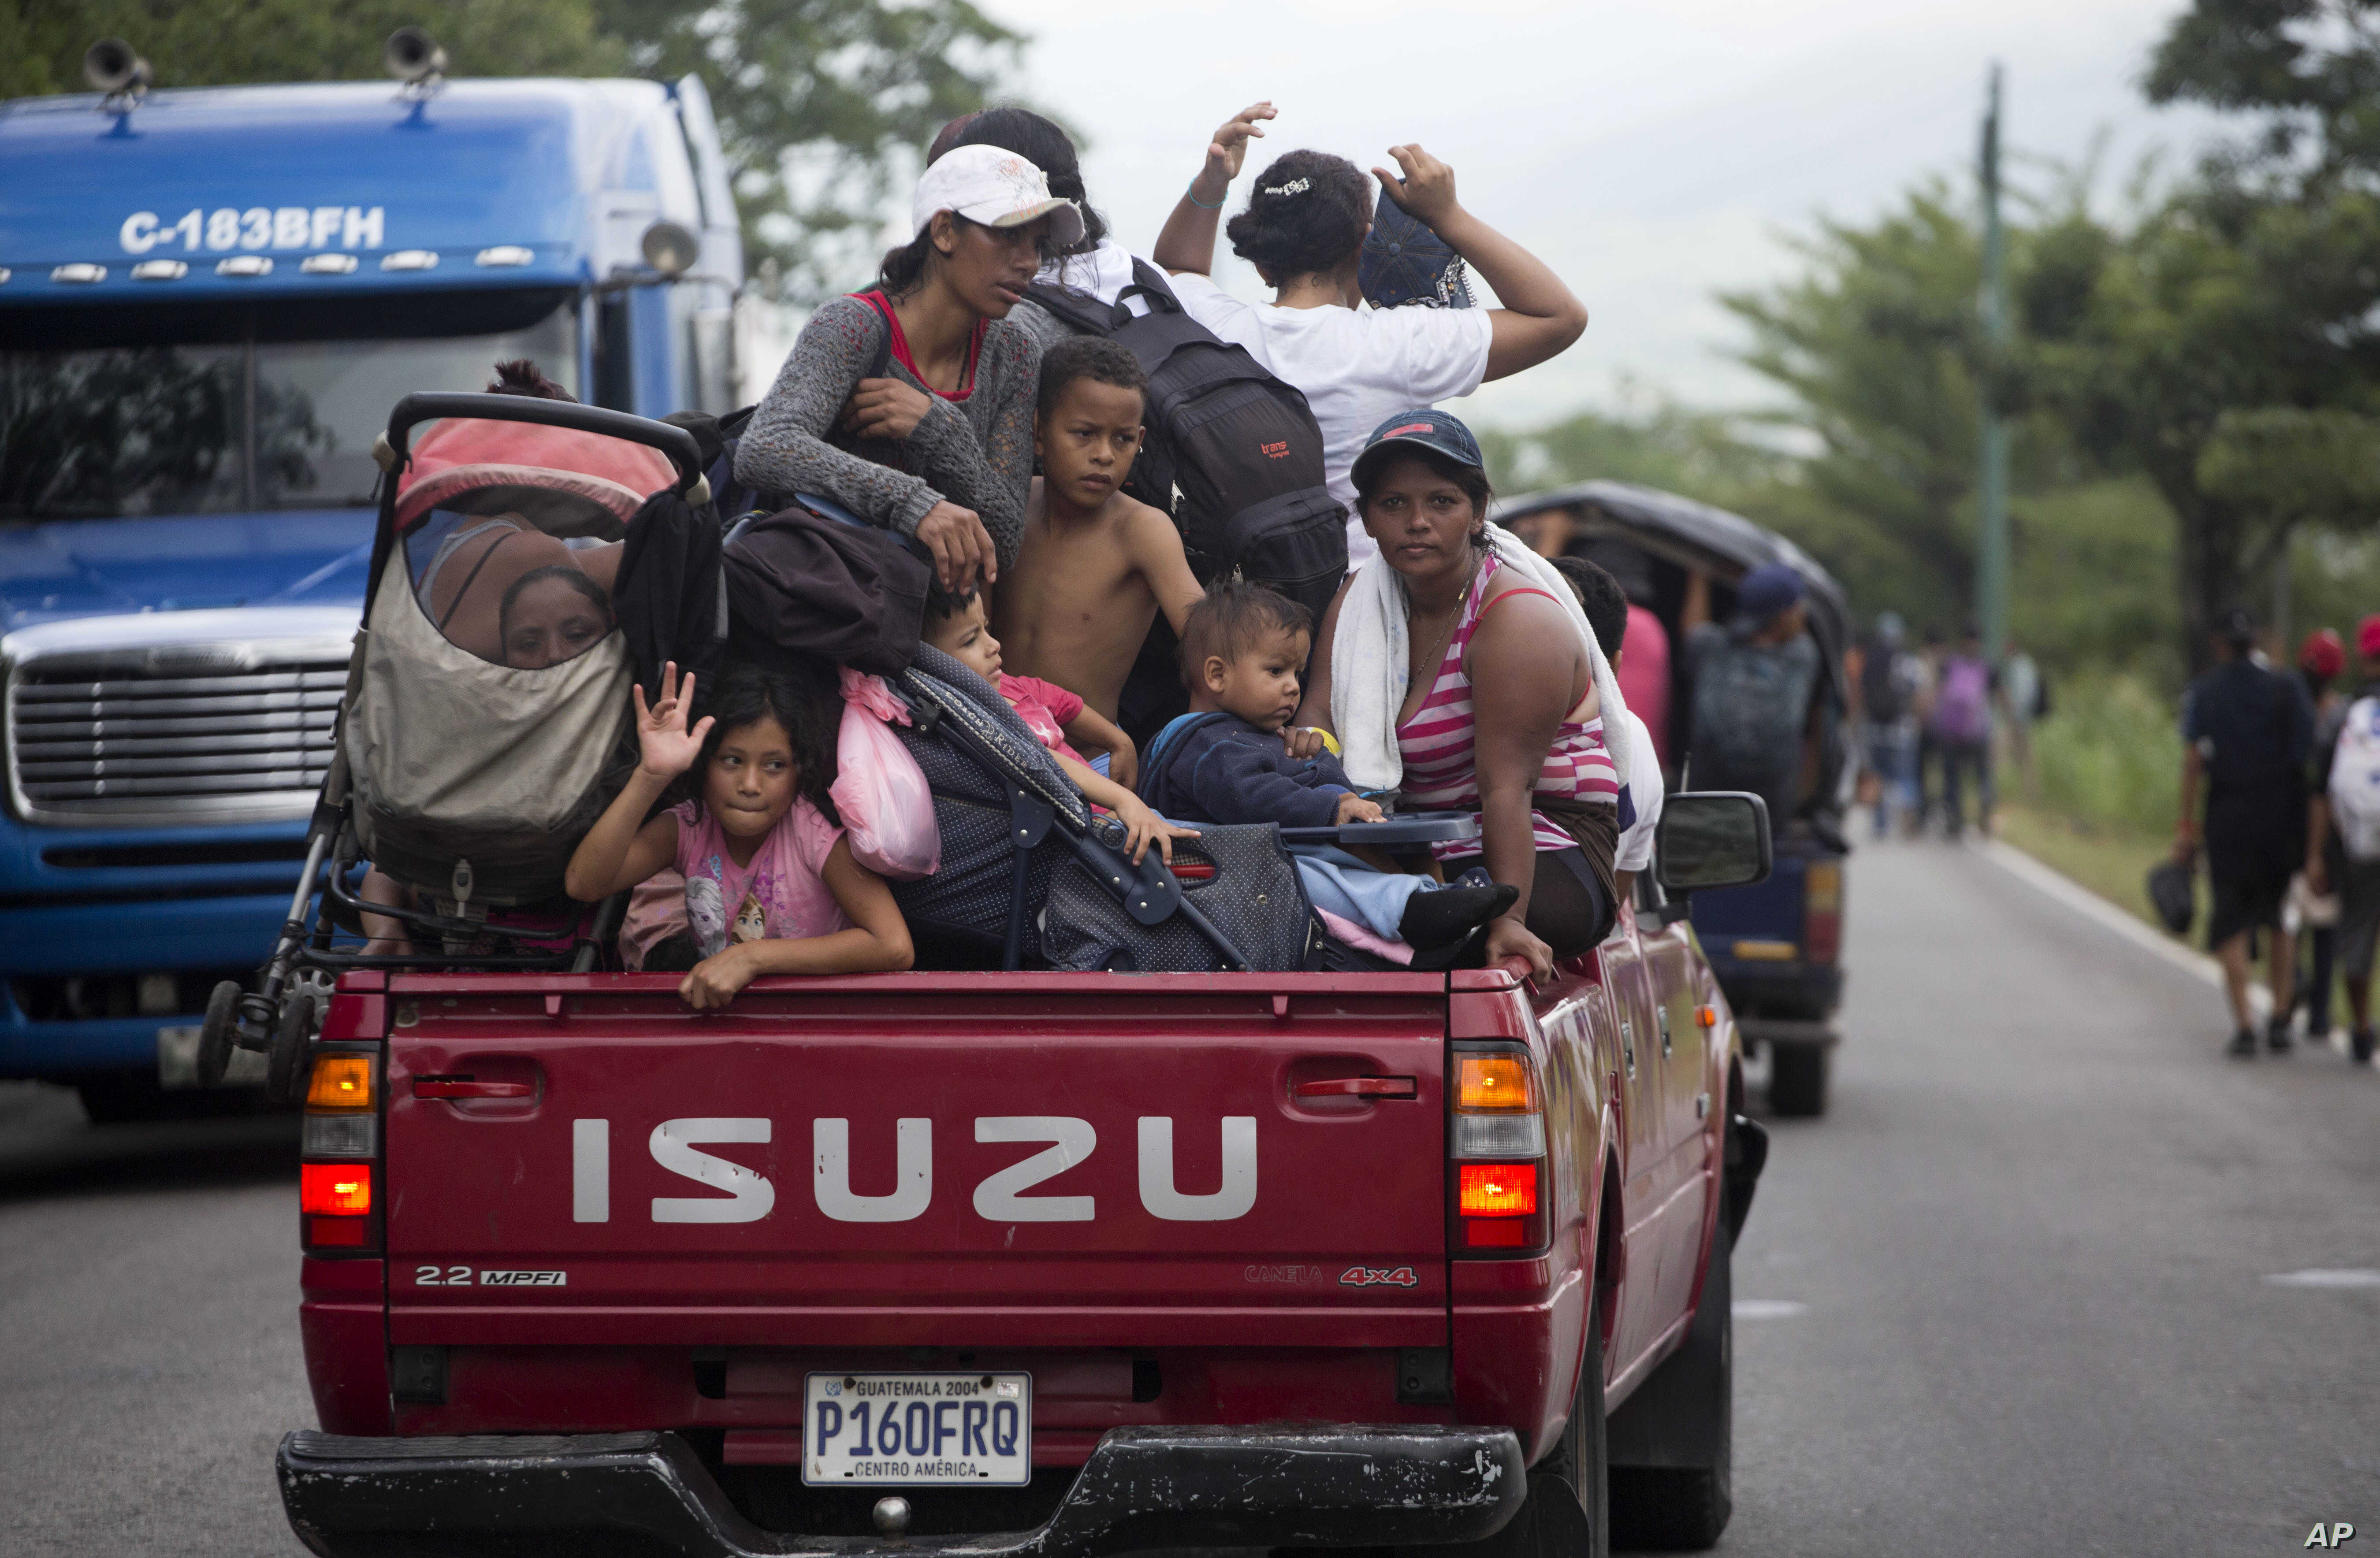 Honduran migrants who are traveling to the U.S. as a group get a free ride in the back of a truck as they make their way through Zacapa, Guatemala, Oct. 17, 2018.